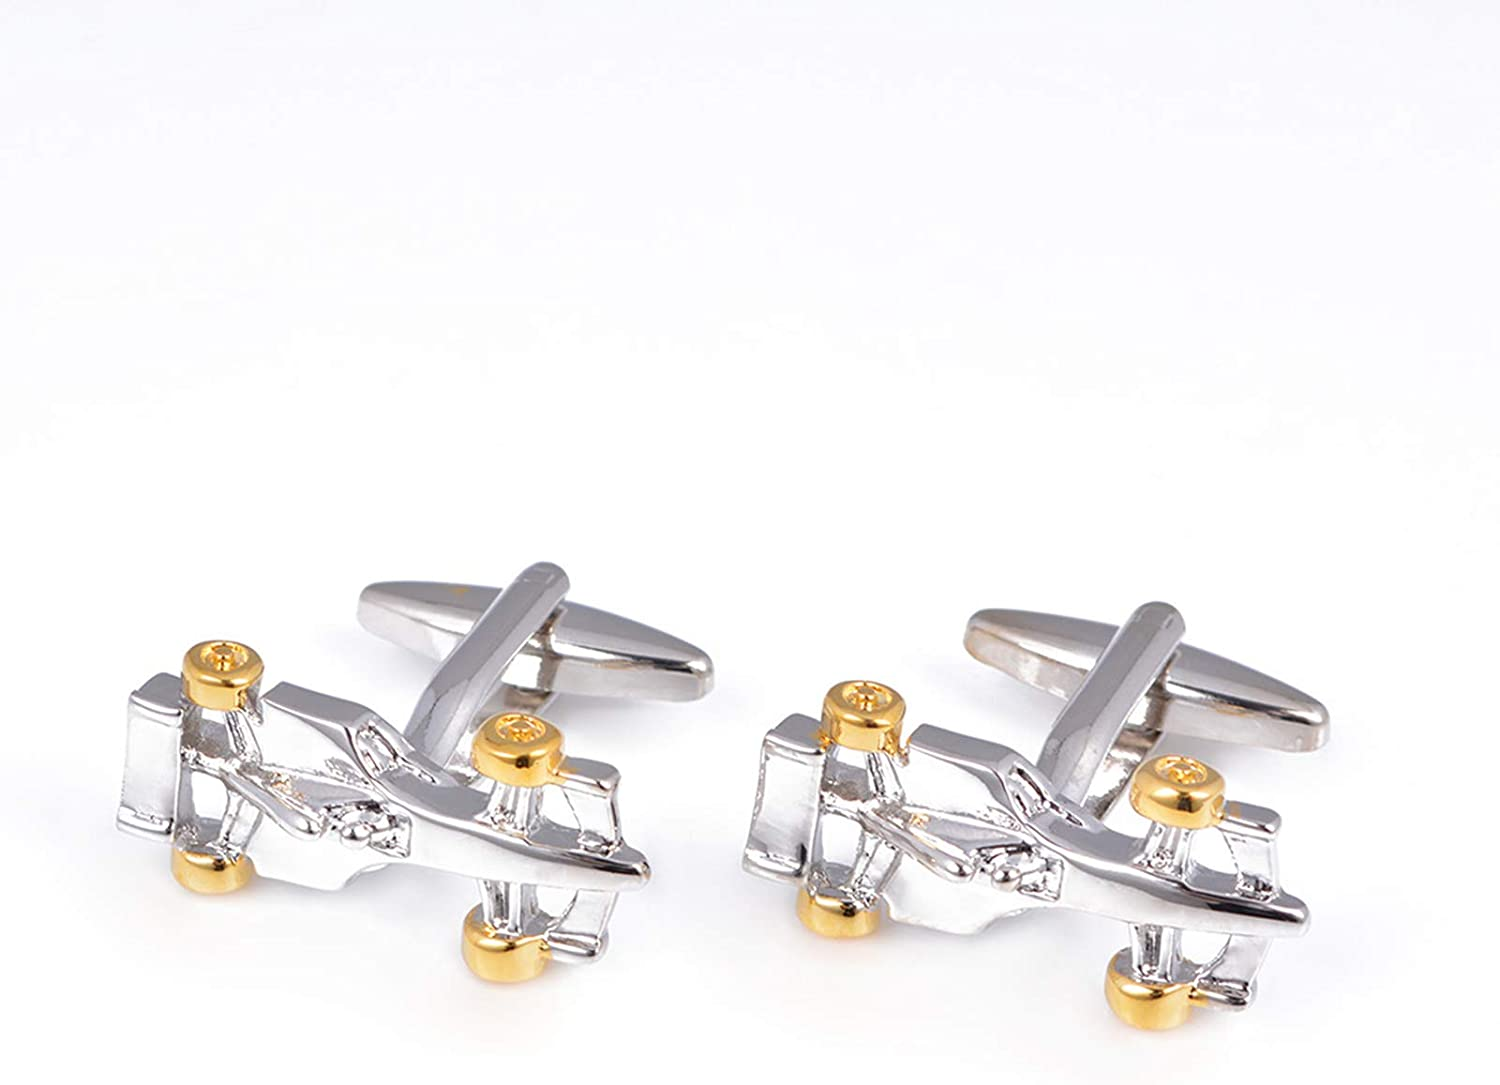 WDDLD Cufflinks Men's Racing Silver Game Style San Antonio Fixed price for sale Mall Cufflink